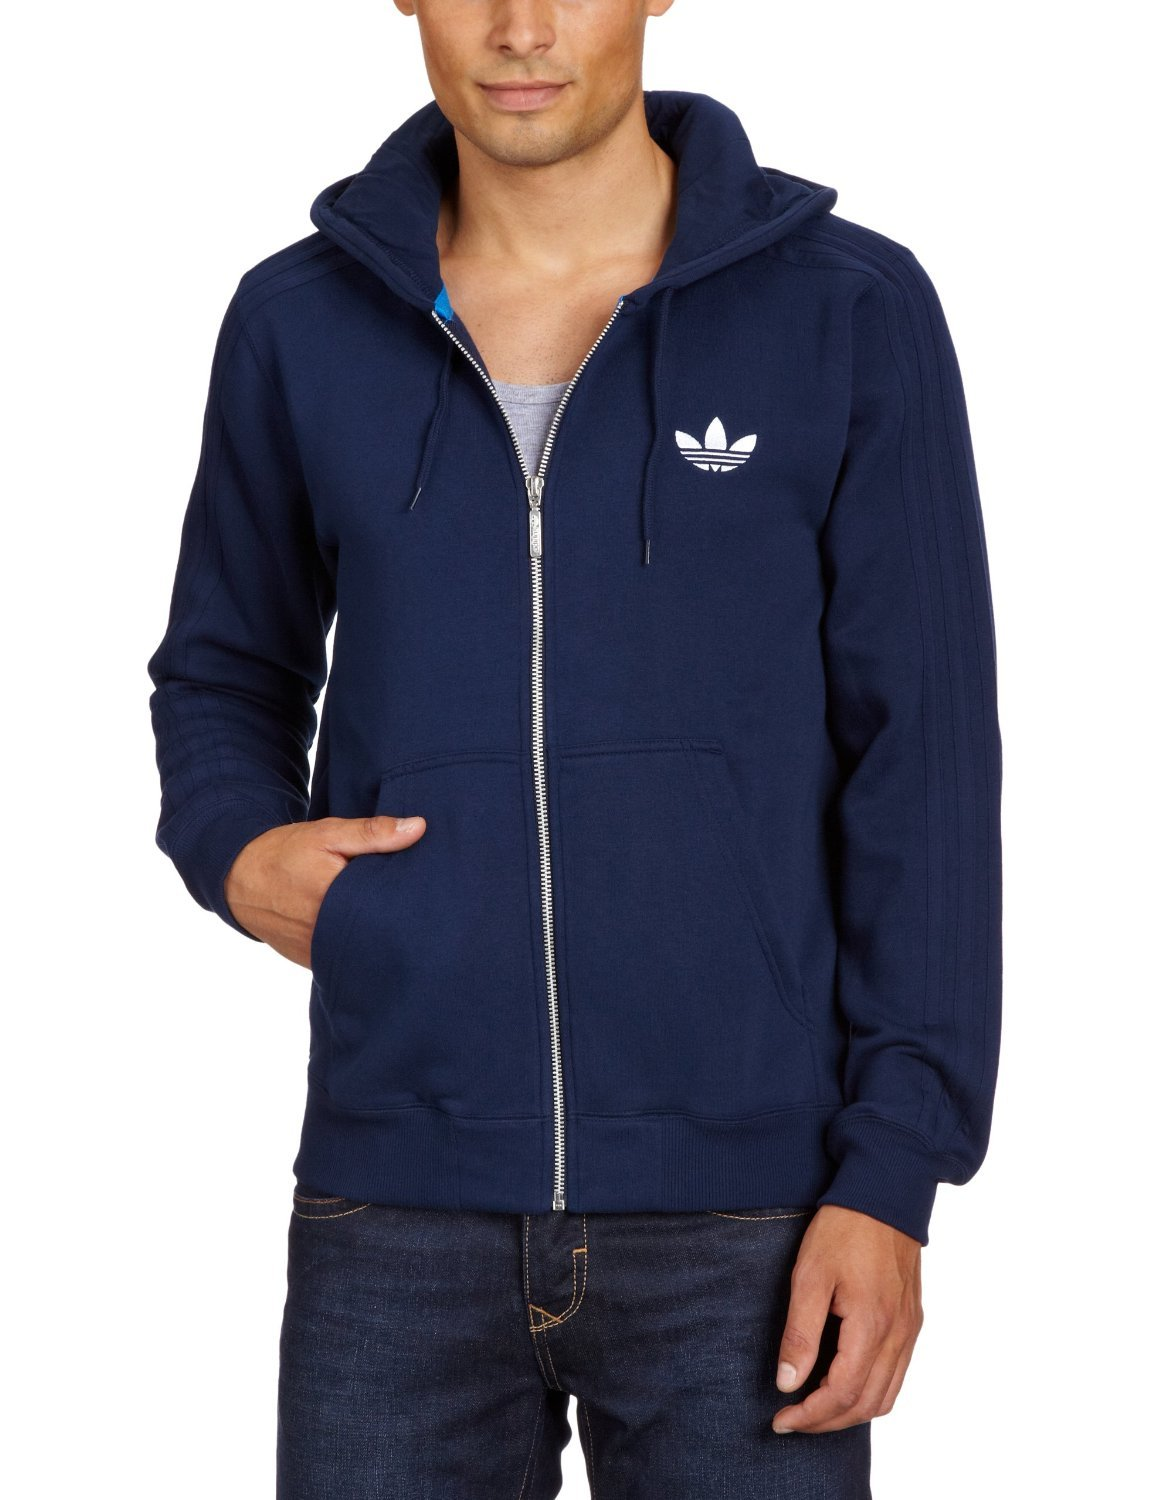 d6da46a5d8ed Adidas Originals SPO Hooded Flock Trefoil Top Hoodie Hoody Mens Size XL -  Navy  Amazon.co.uk  Clothing